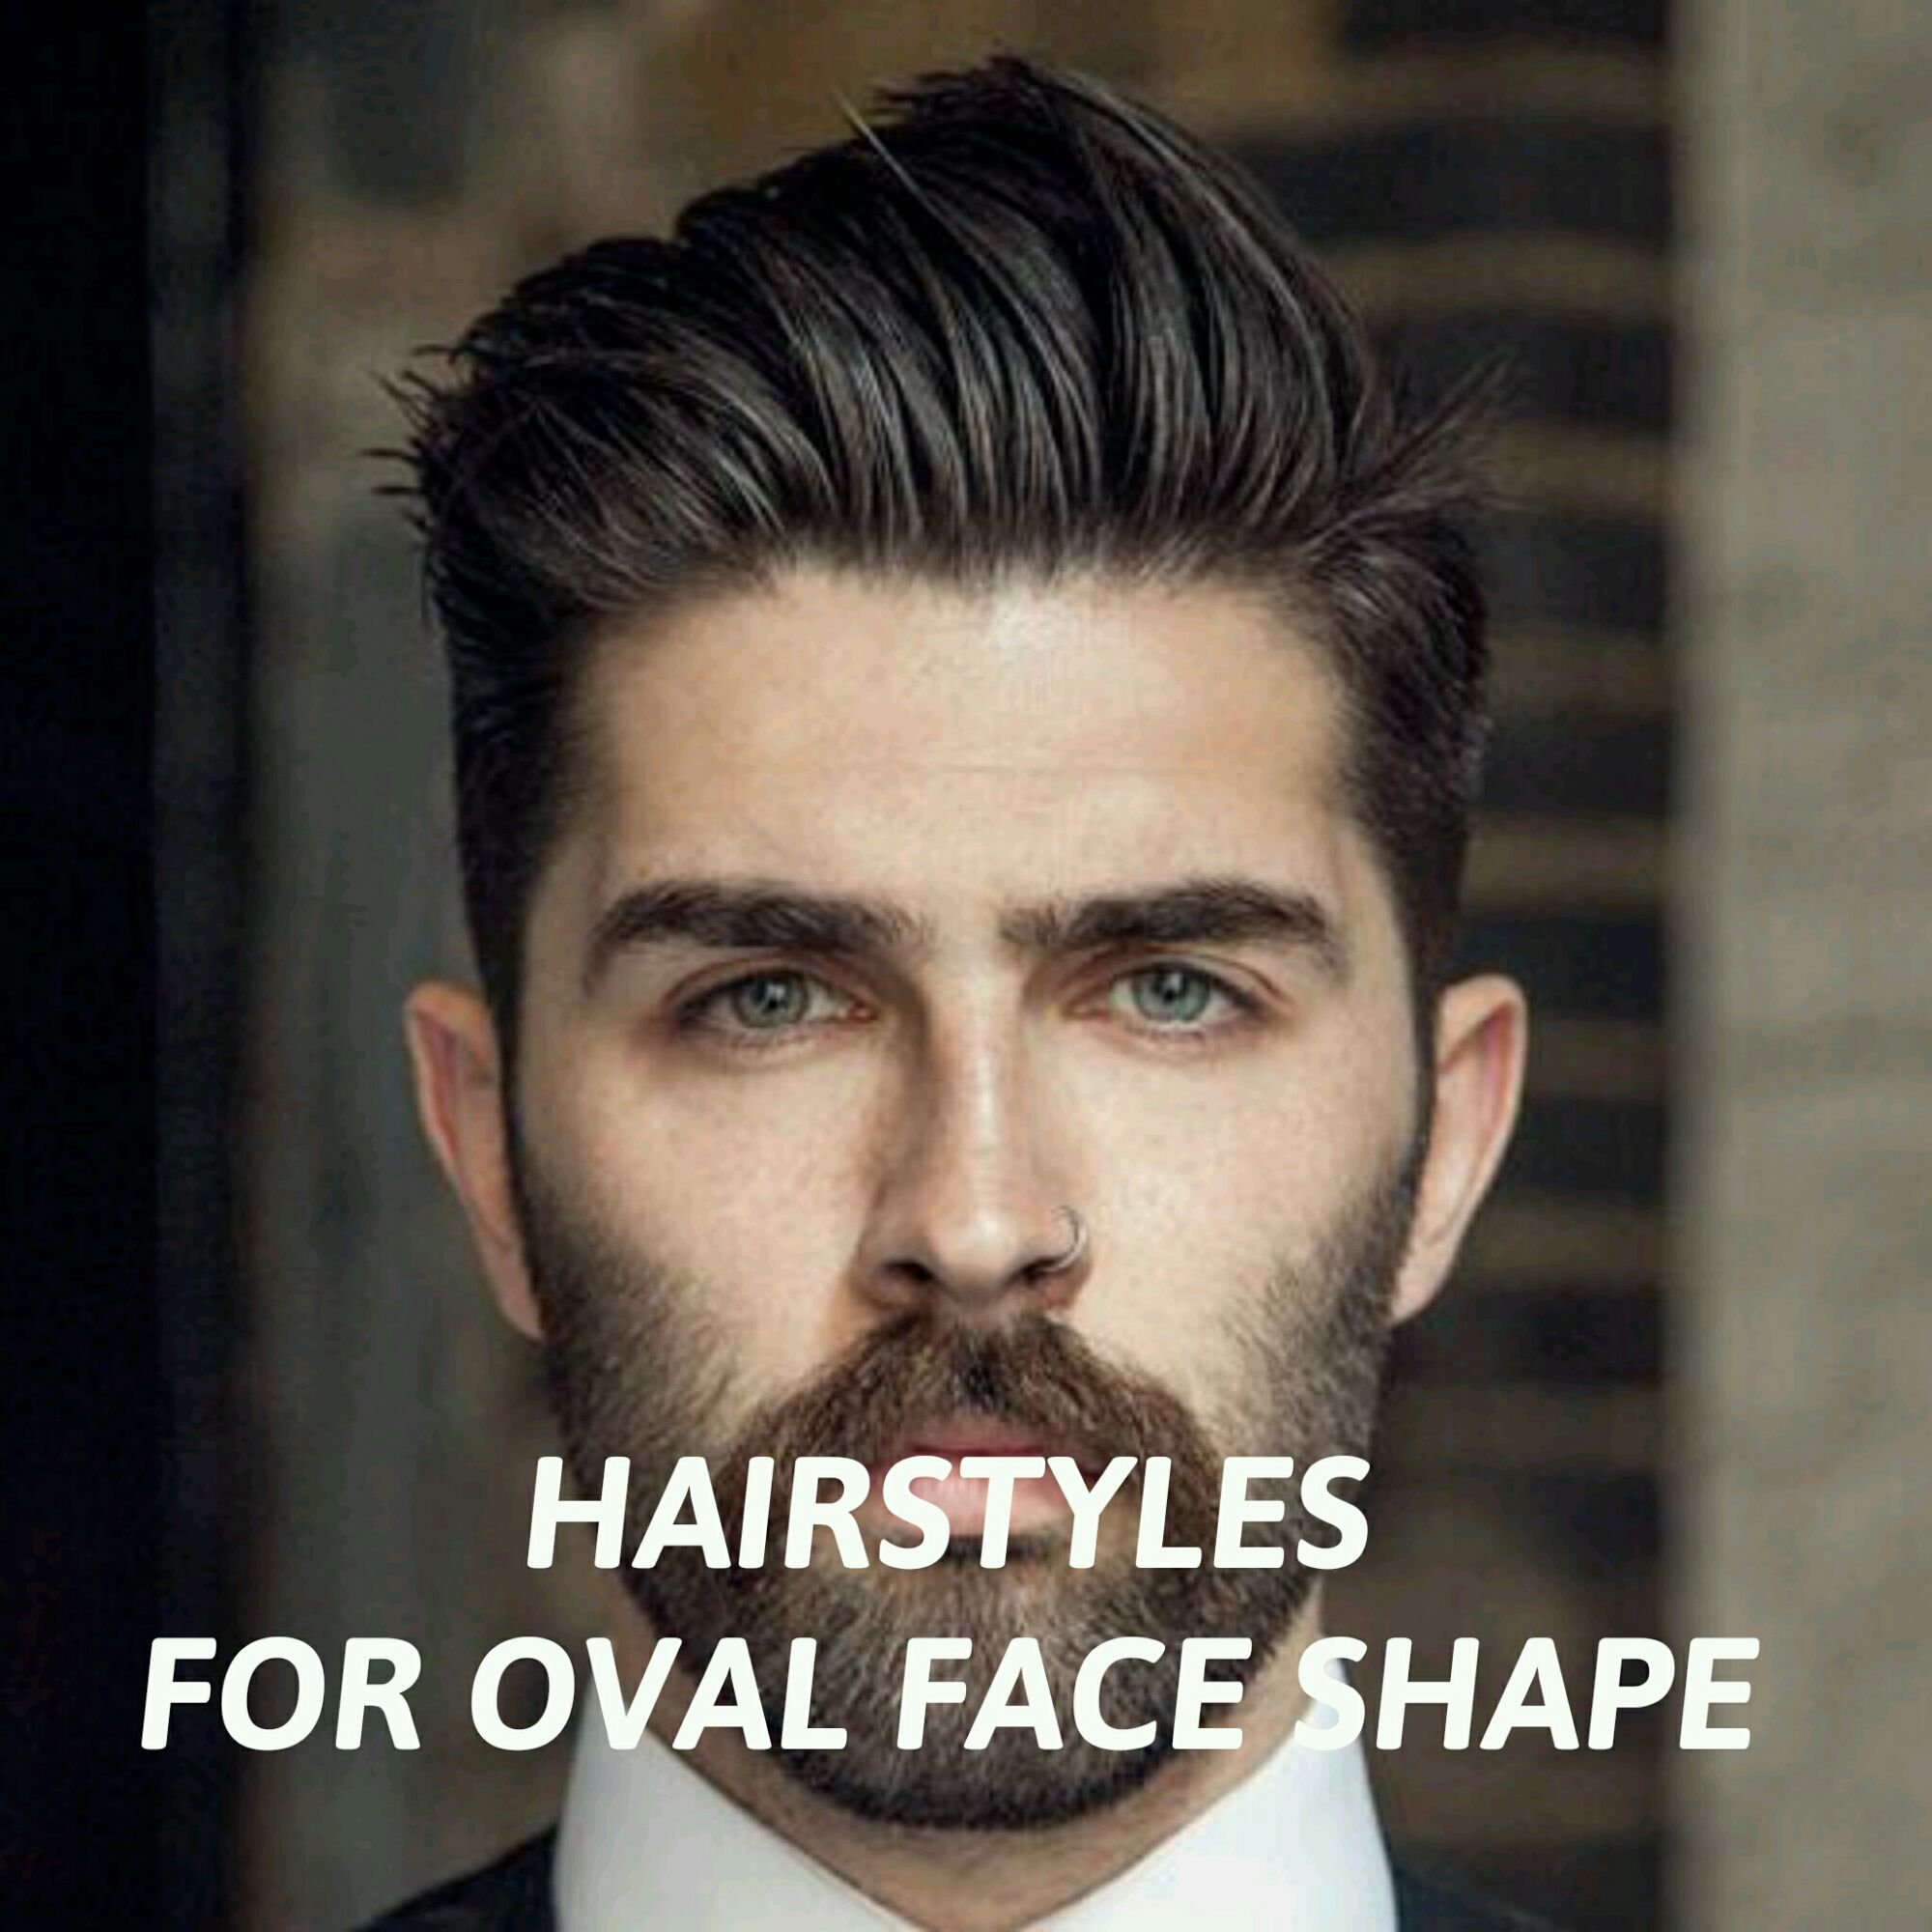 men's hairstyles for oval face shape | hairstyles | mens